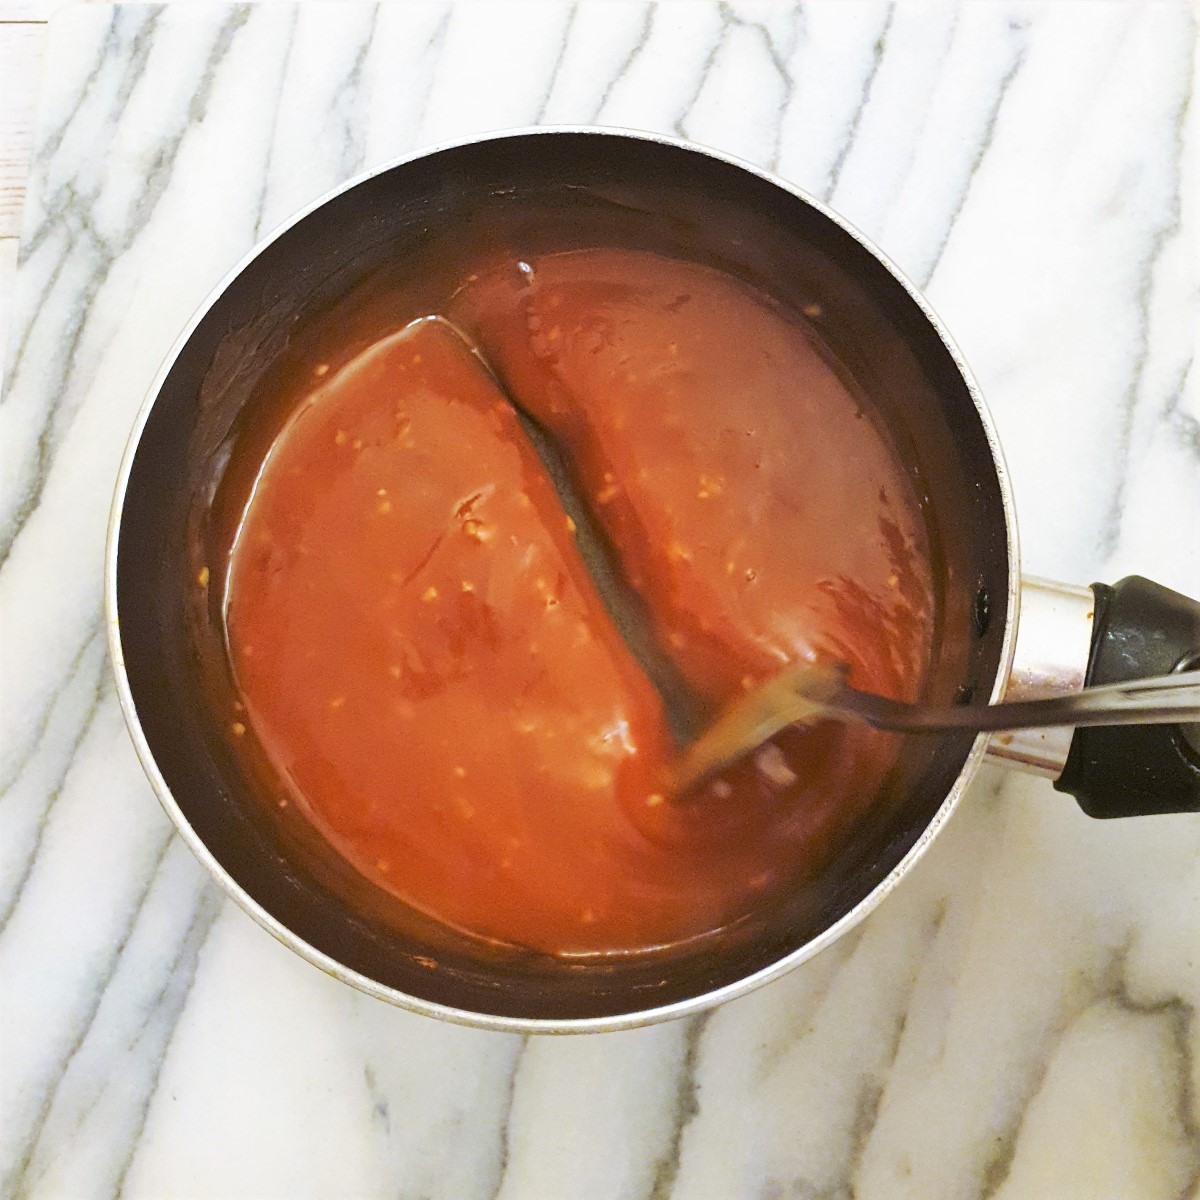 Overhead shot of sweet and sour sauce, showing consistency.